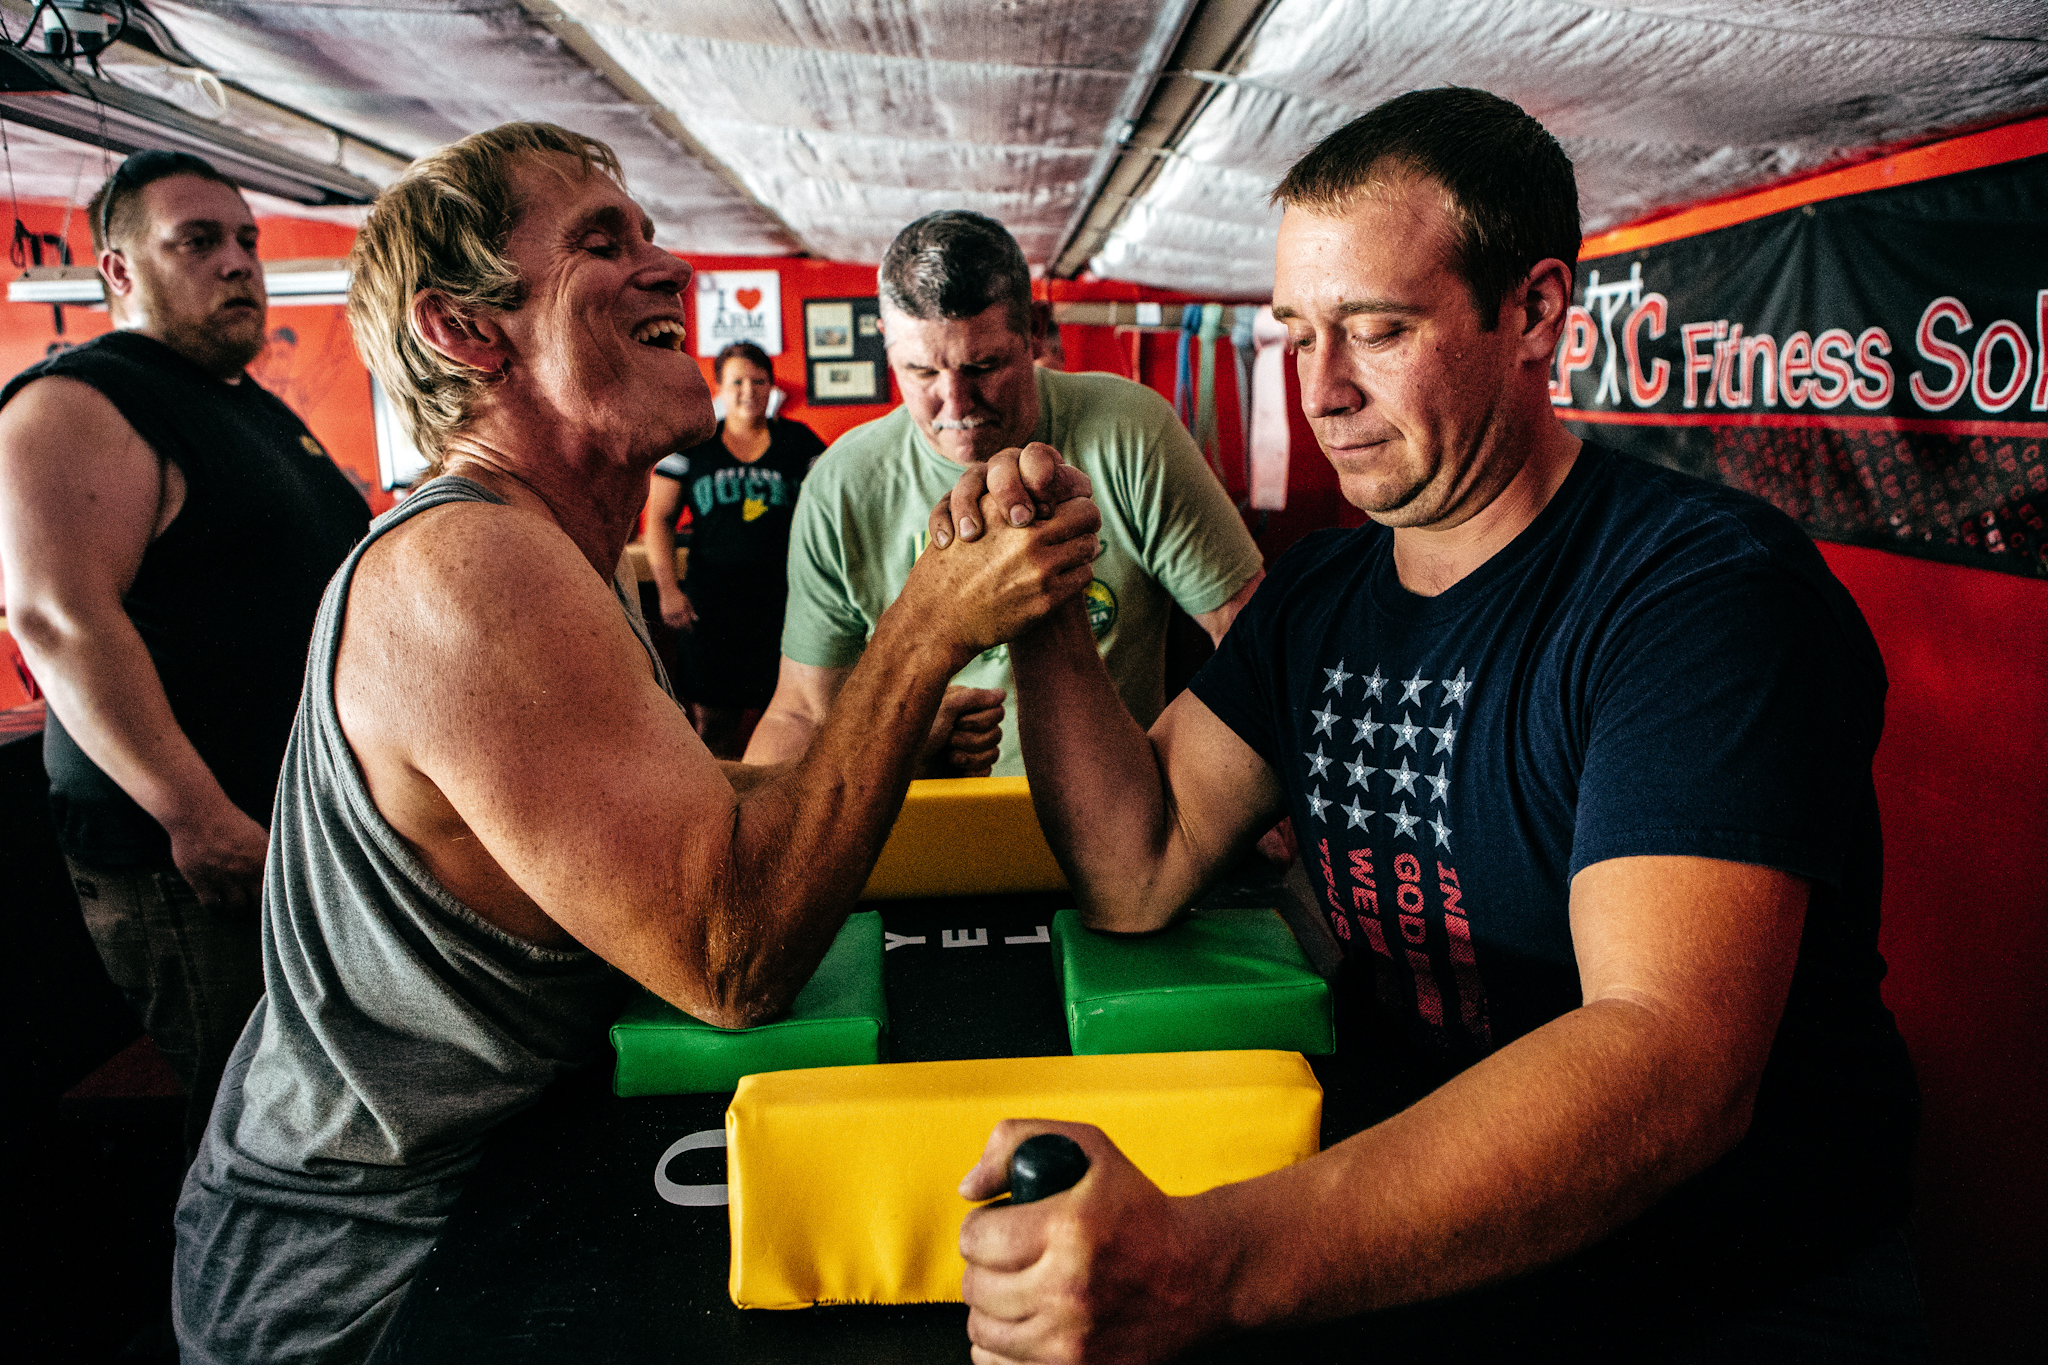 Variant cute mixed busty armwrestling sorry